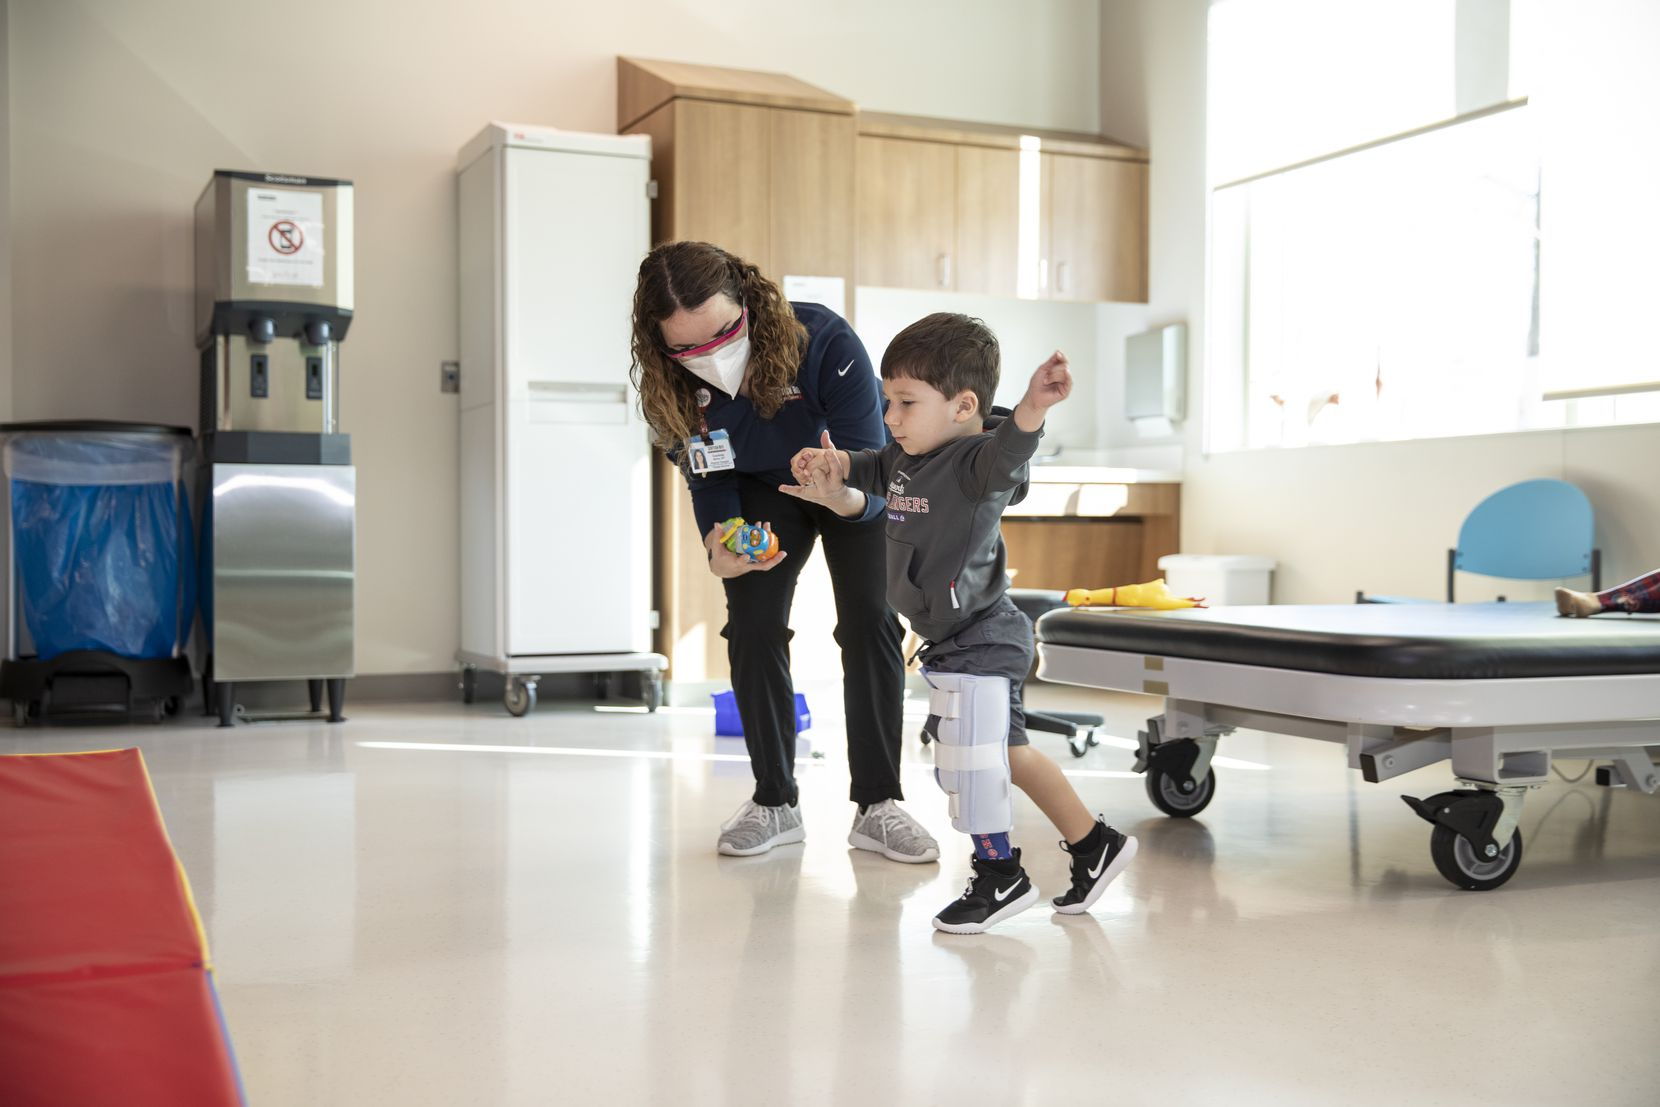 With decades of experience, Scottish Rite for Children employs the best doctors, specialists and therapists in their fields to understand children and the individualized care they need.